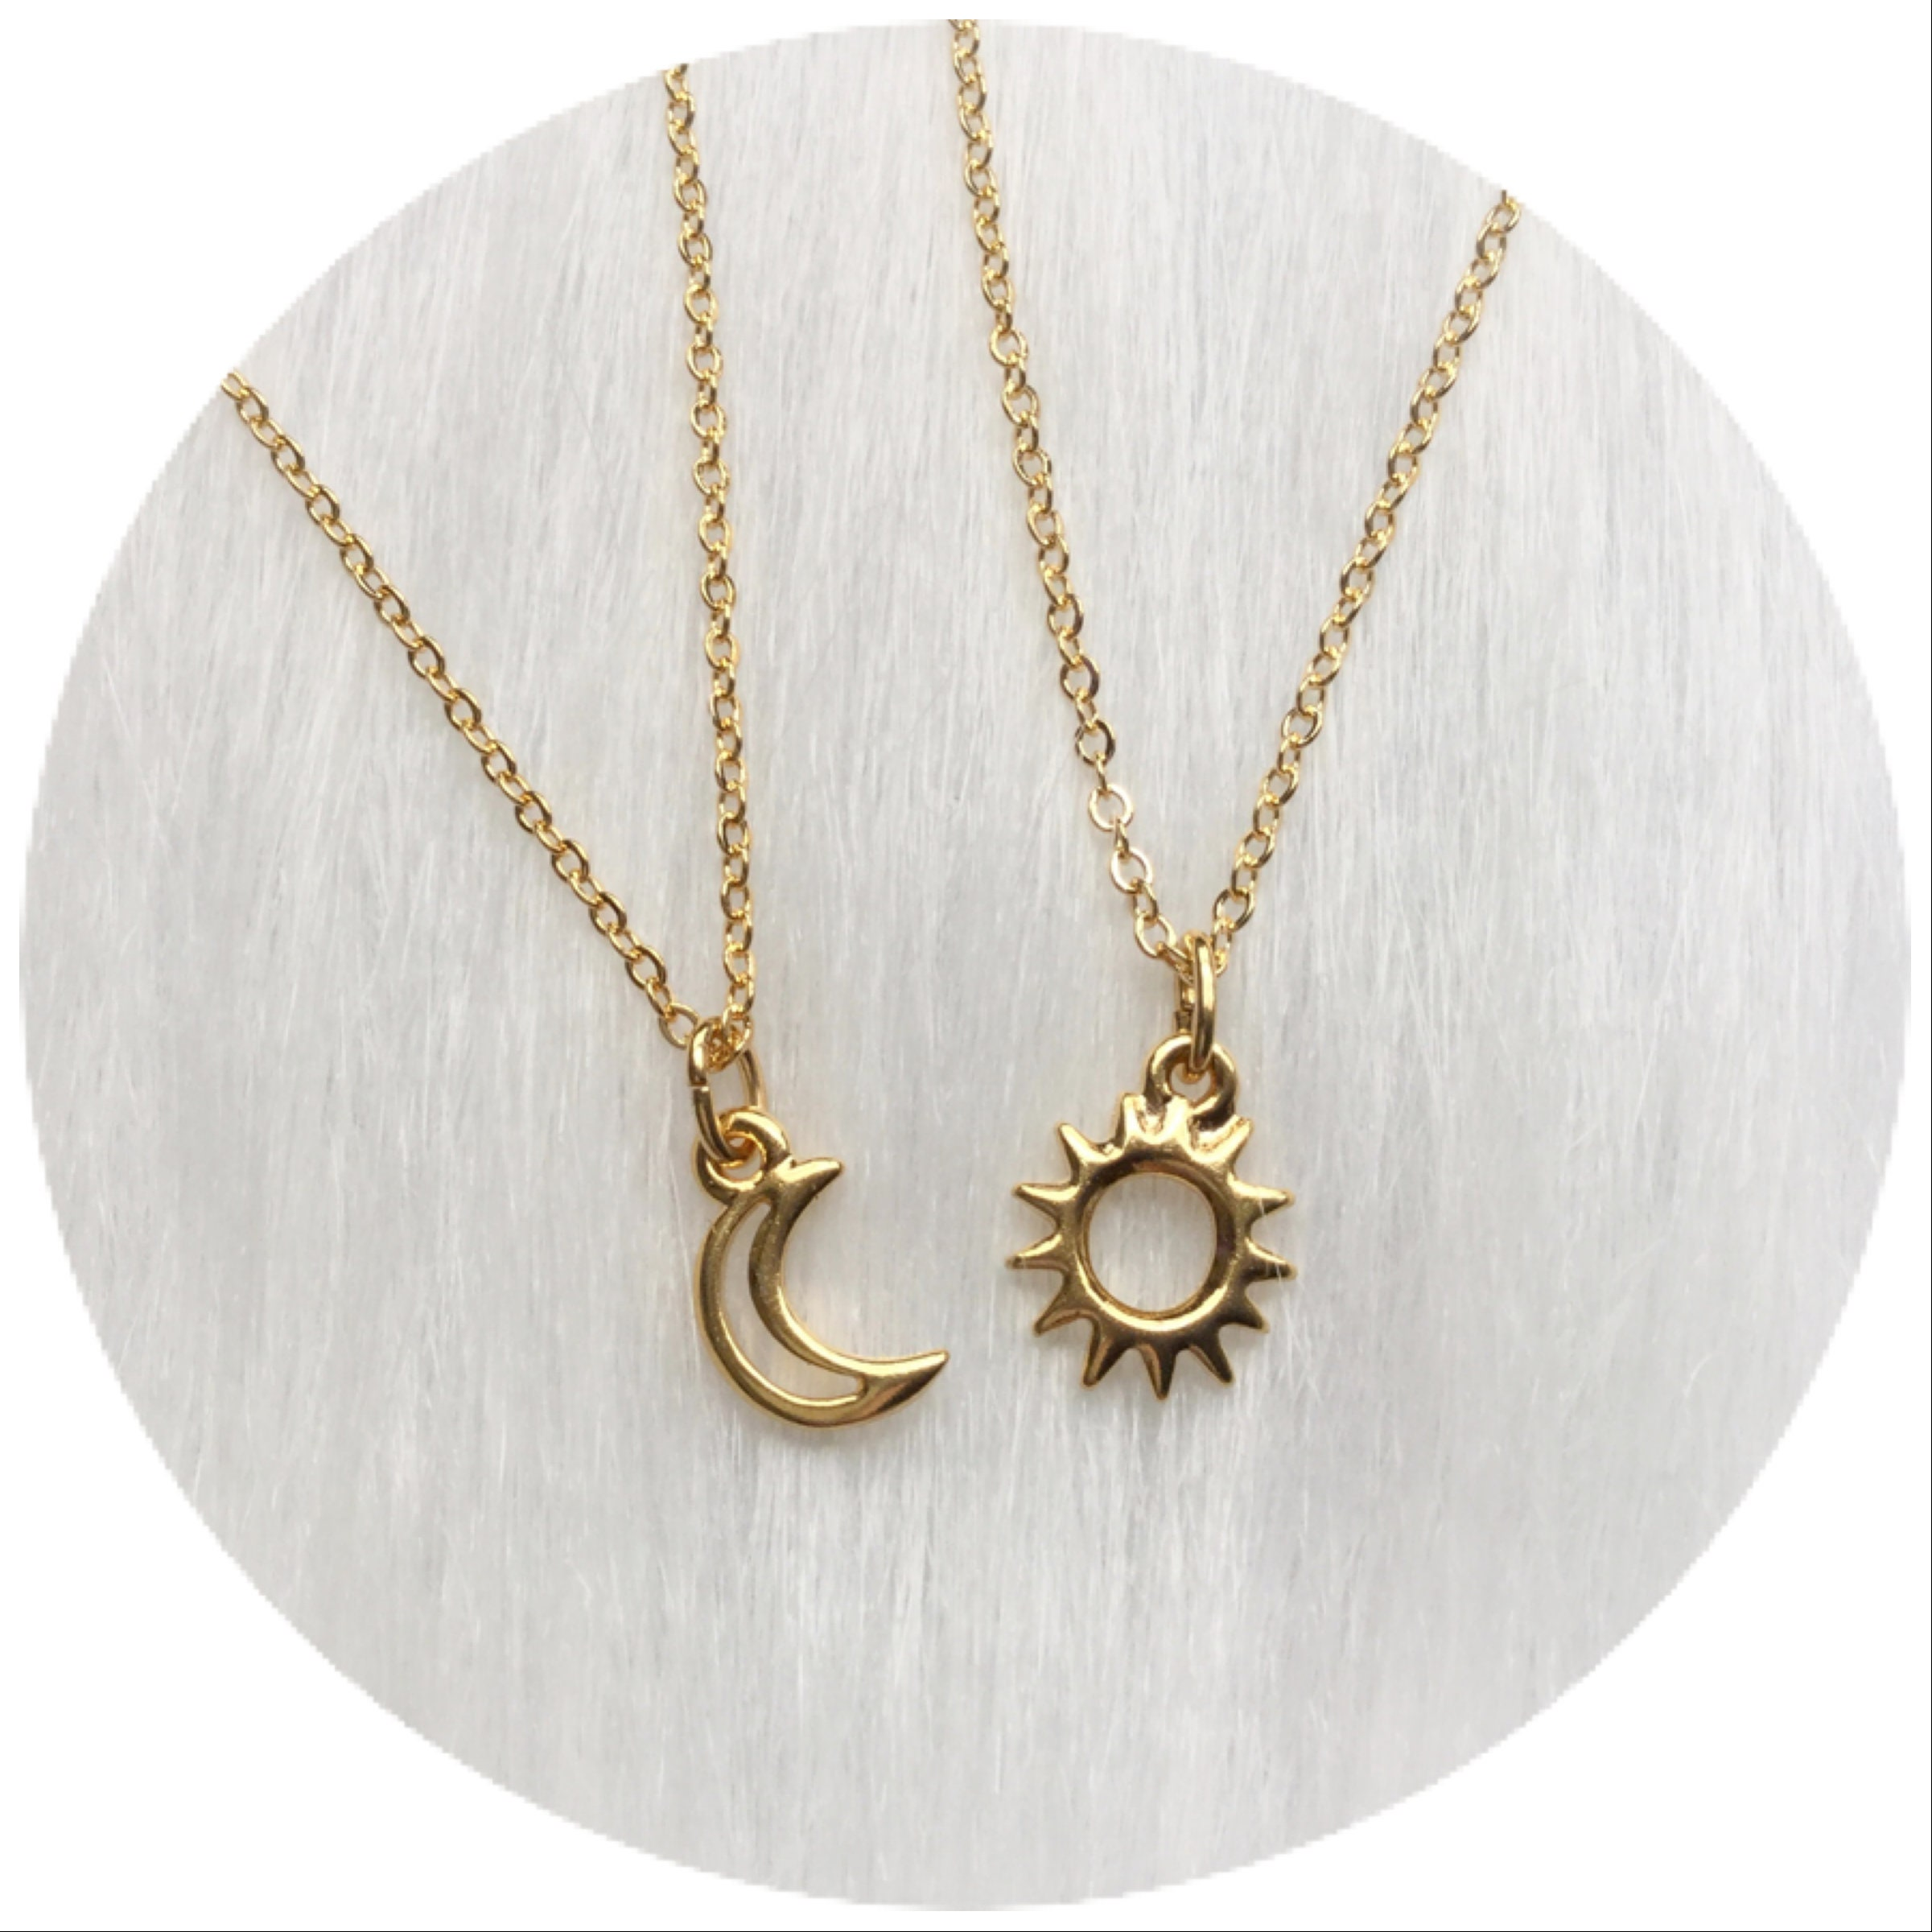 sun judith jewelry product rare early moon hendler ml necklace